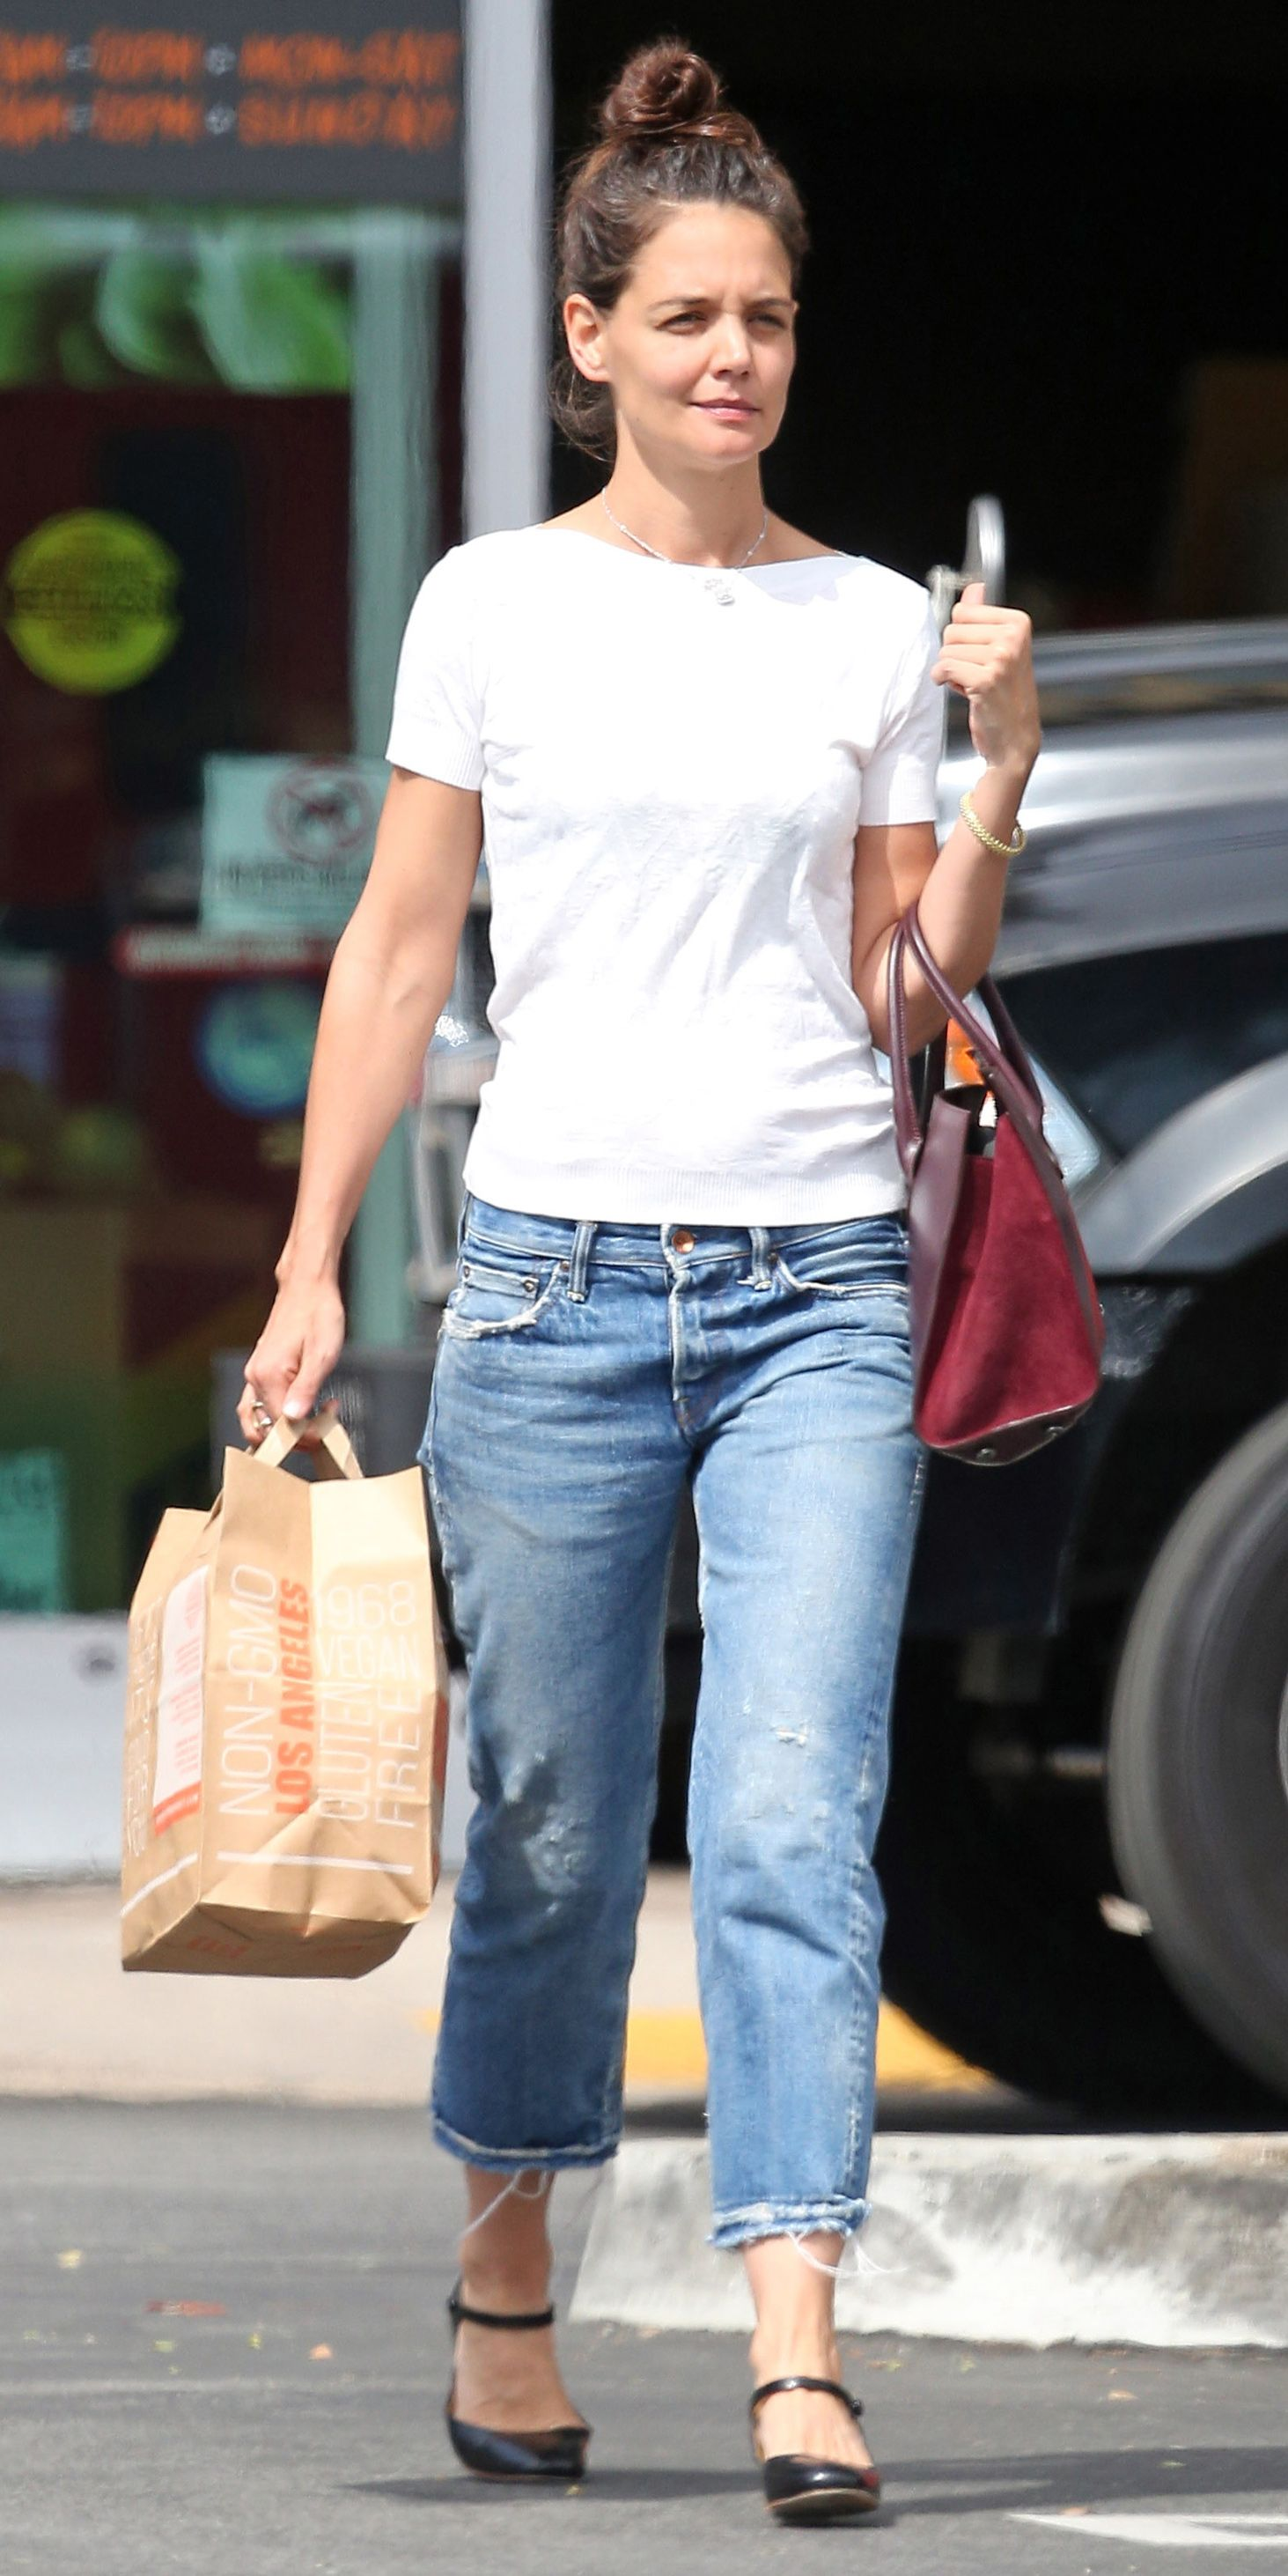 Katie Holmes's Midi-Heeled Mary Janes Perfectly Dress Up Jeans and a Tee from InStyle.com | Katie holmes style, Dress up jeans, Casual summer outfits